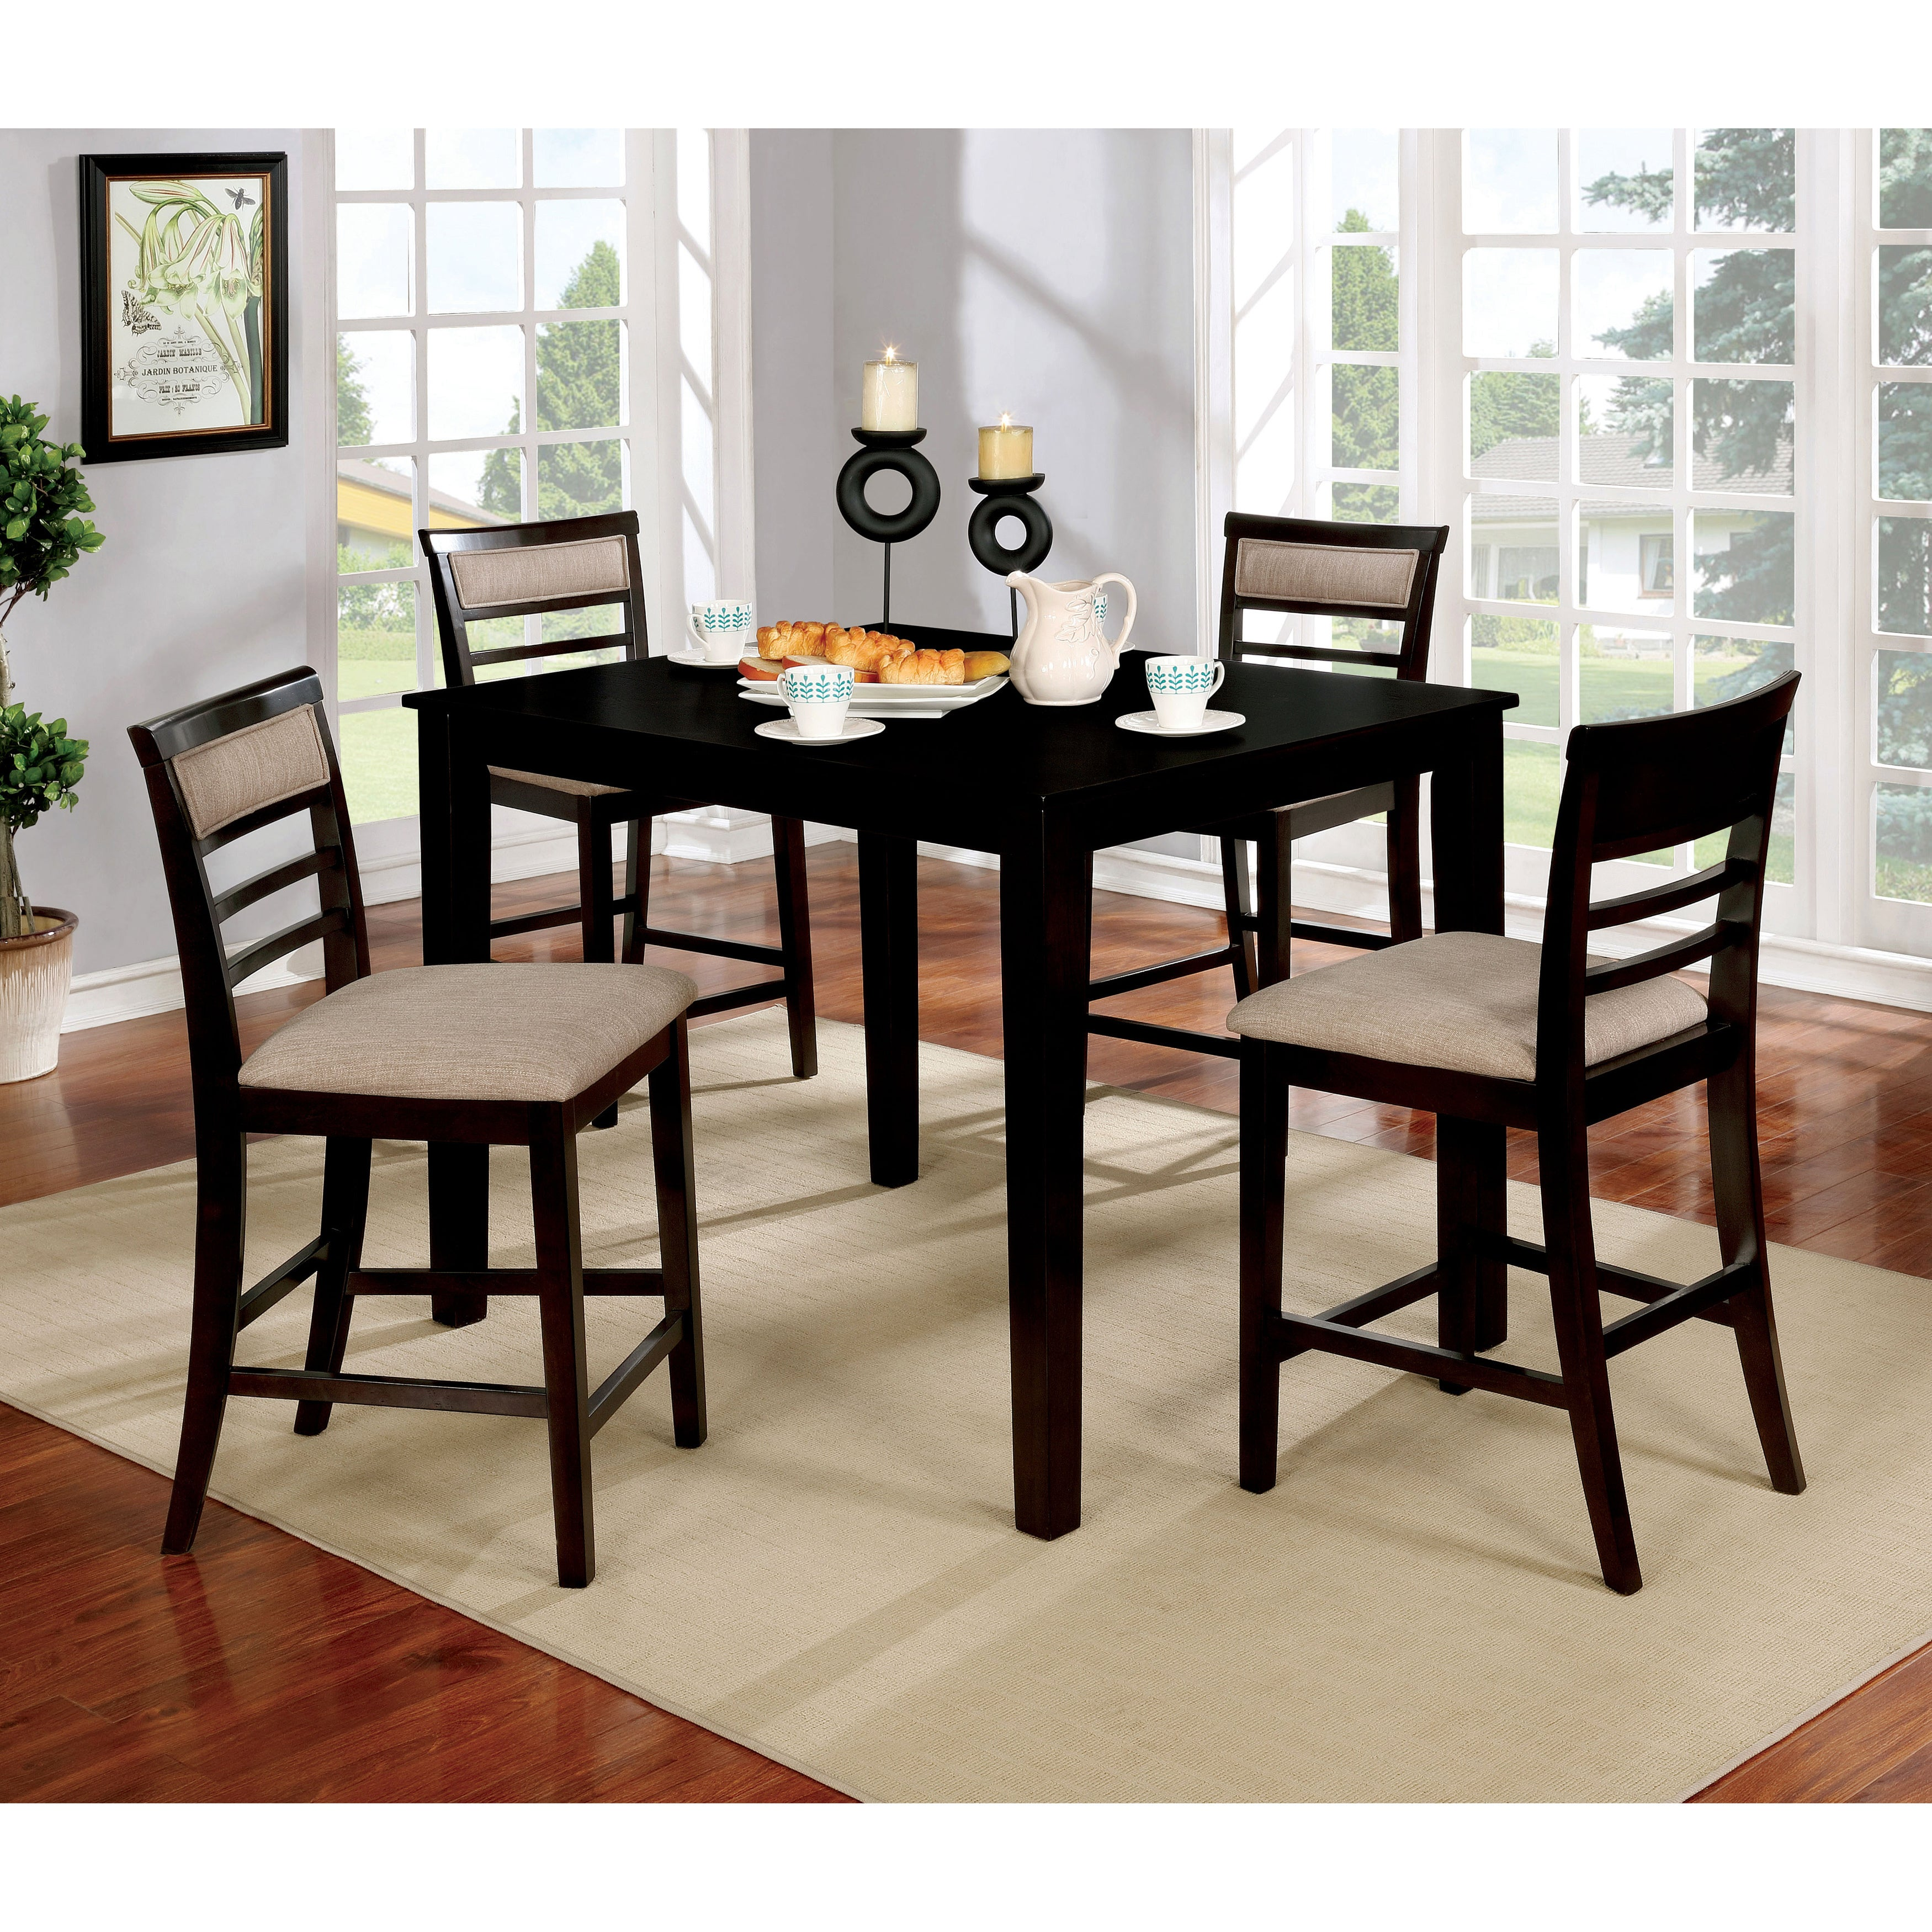 Shop Furniture Of America Yevana Contemporary 5 Piece Counter Height